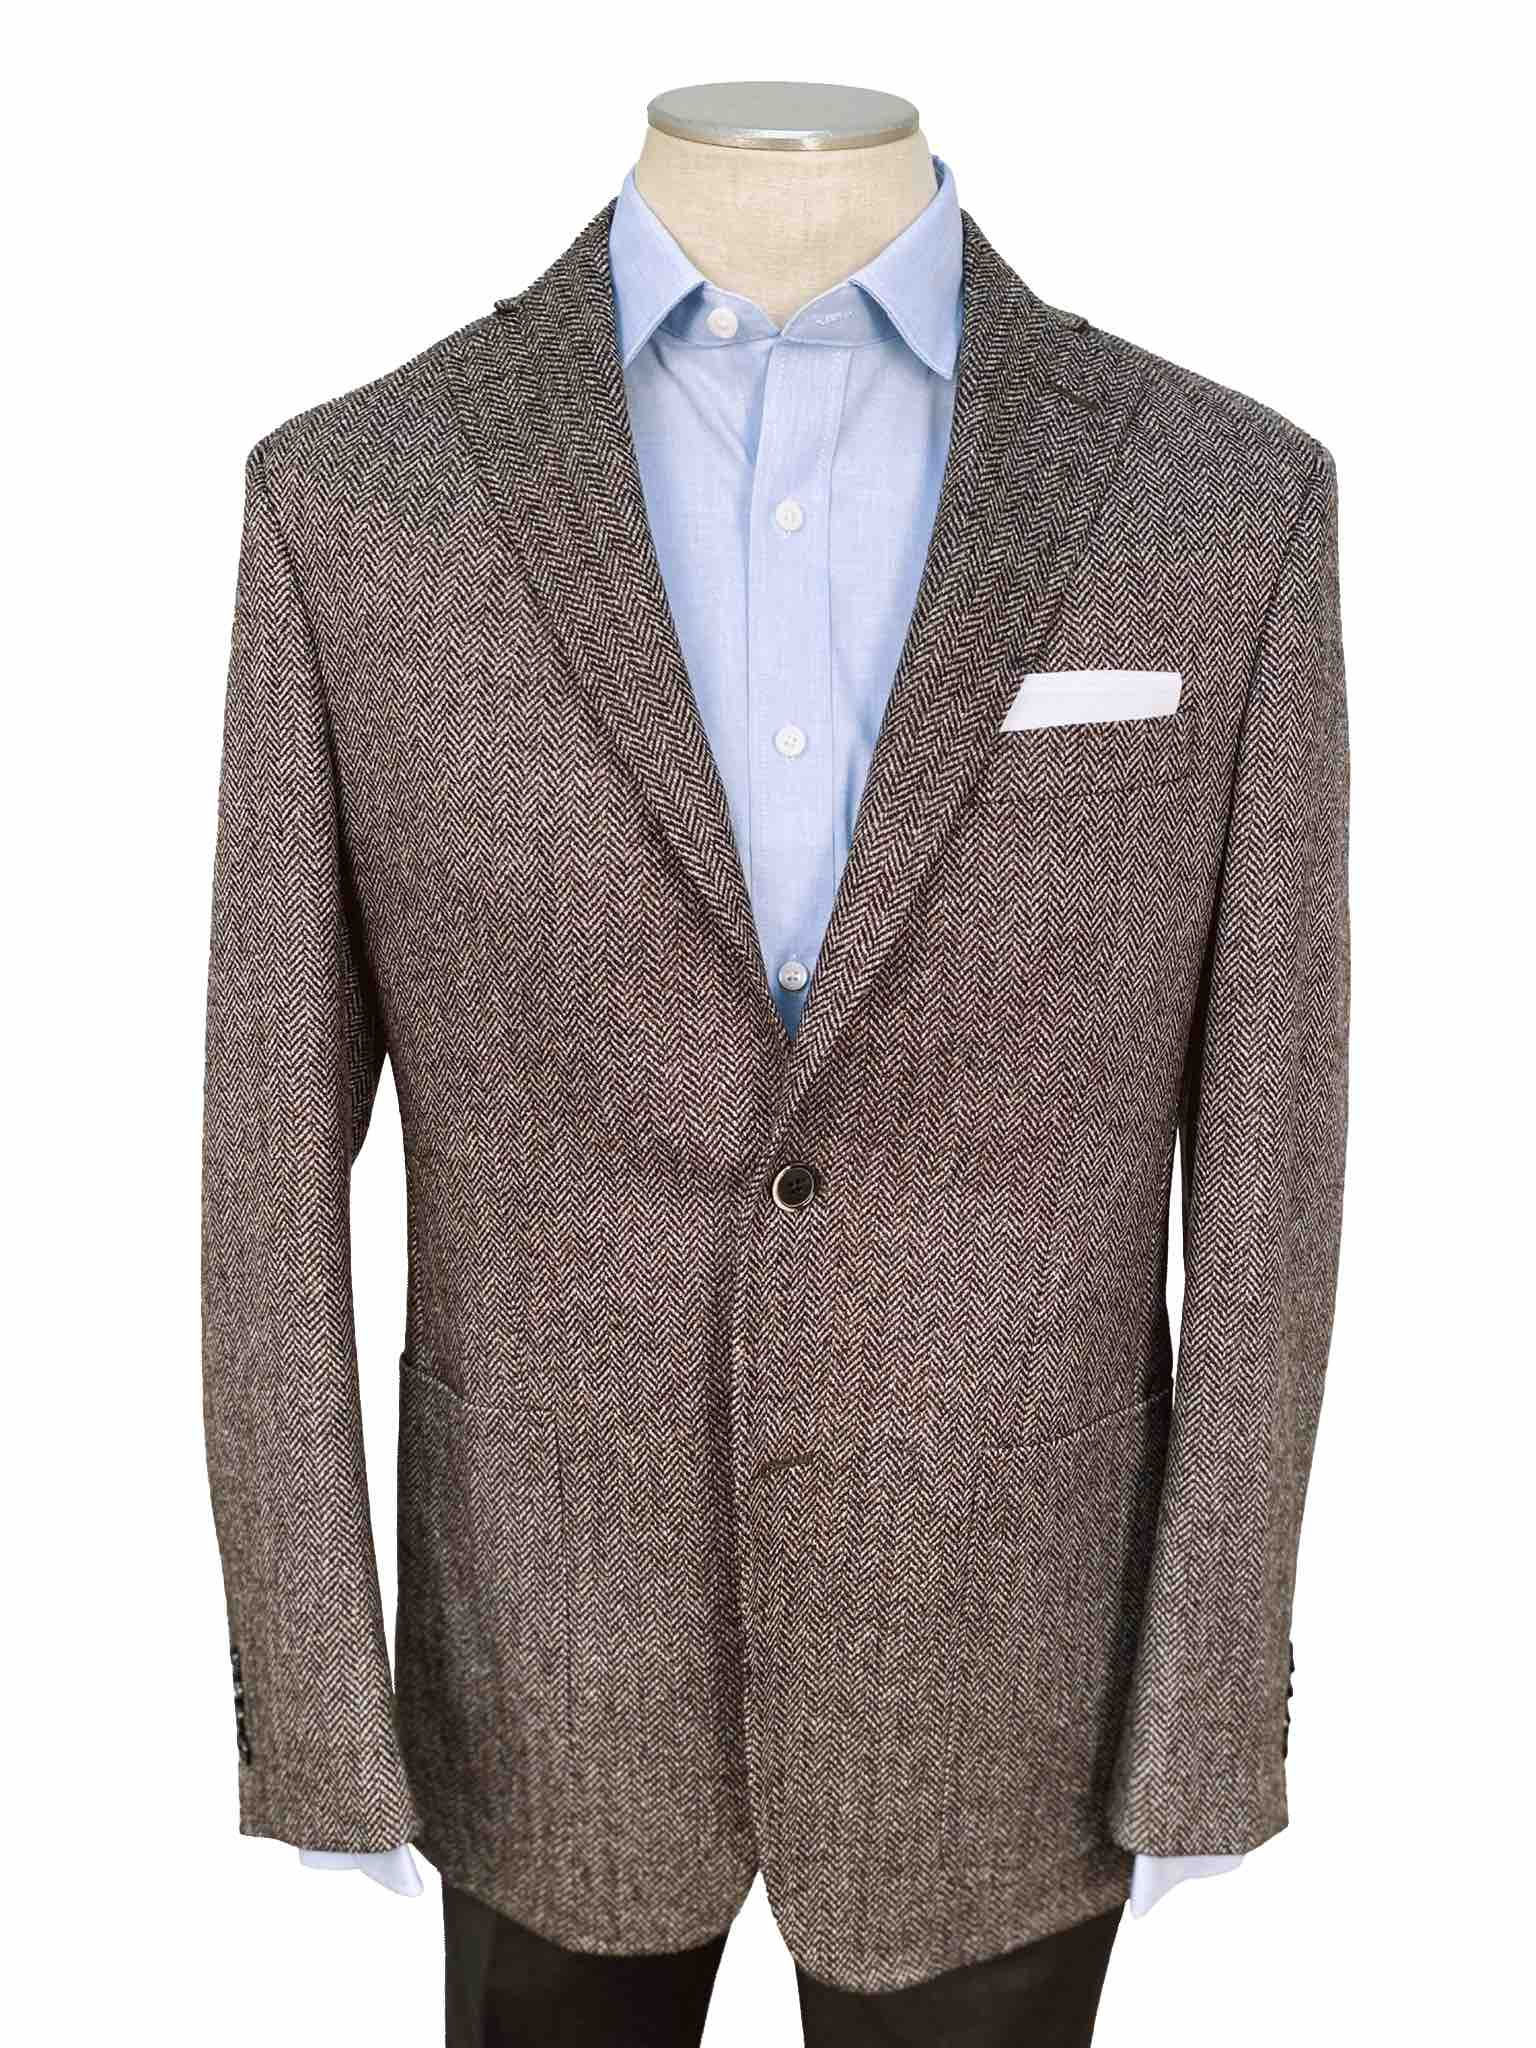 Men's Sport Coat Modern Cut - BROWN HERRINGBONE - 95% WOOL/5% CASHMERE